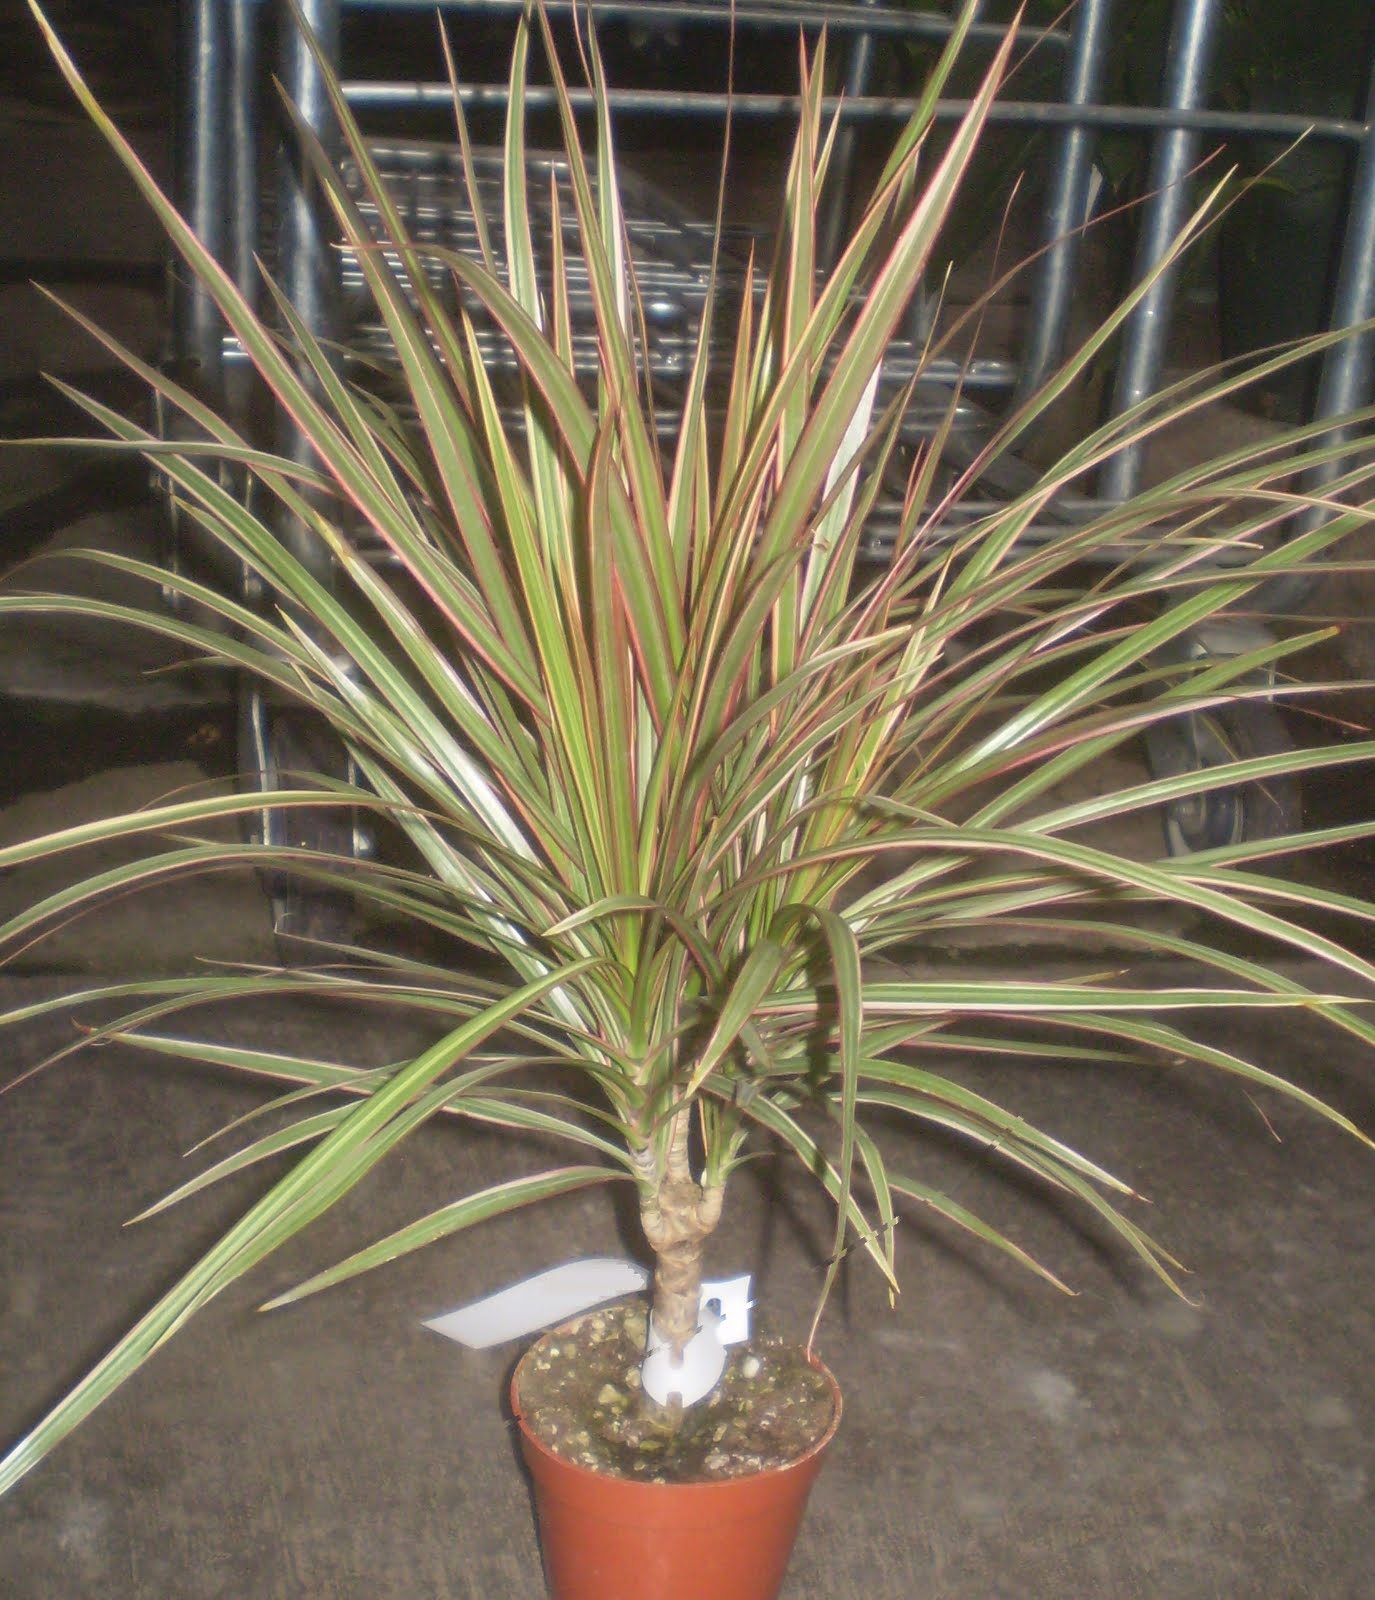 6 character stump dracaena